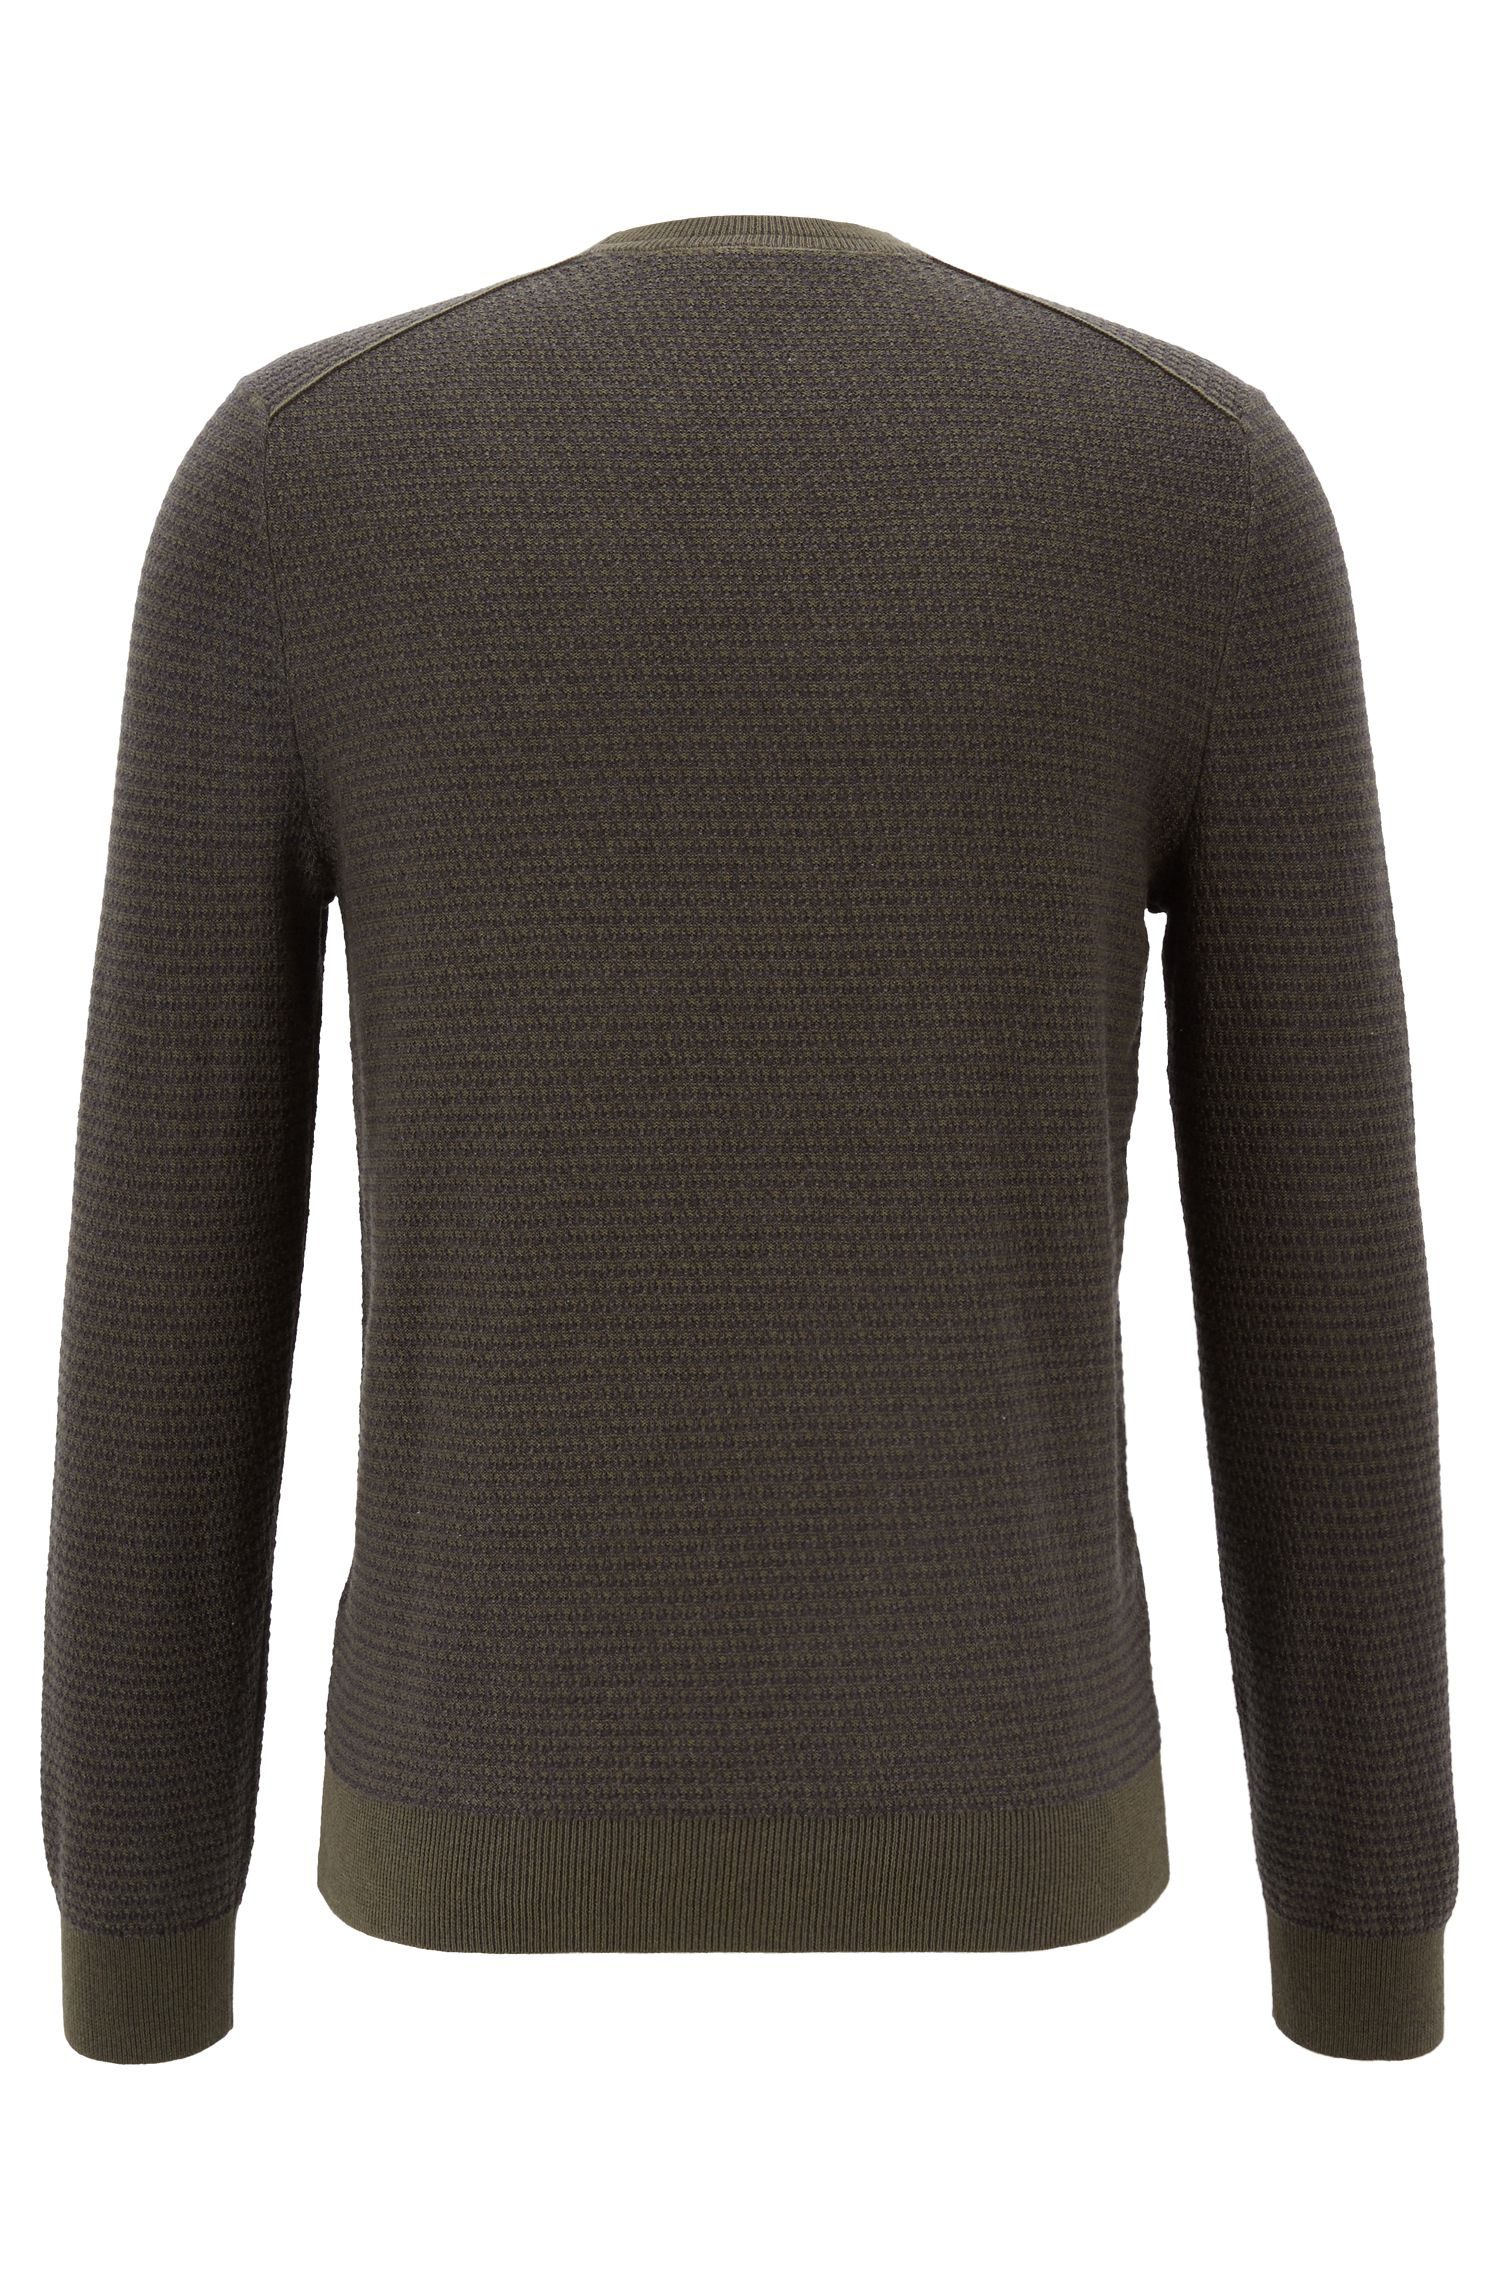 Cotton-blend sweater with two-tone micro structure, Dark Green